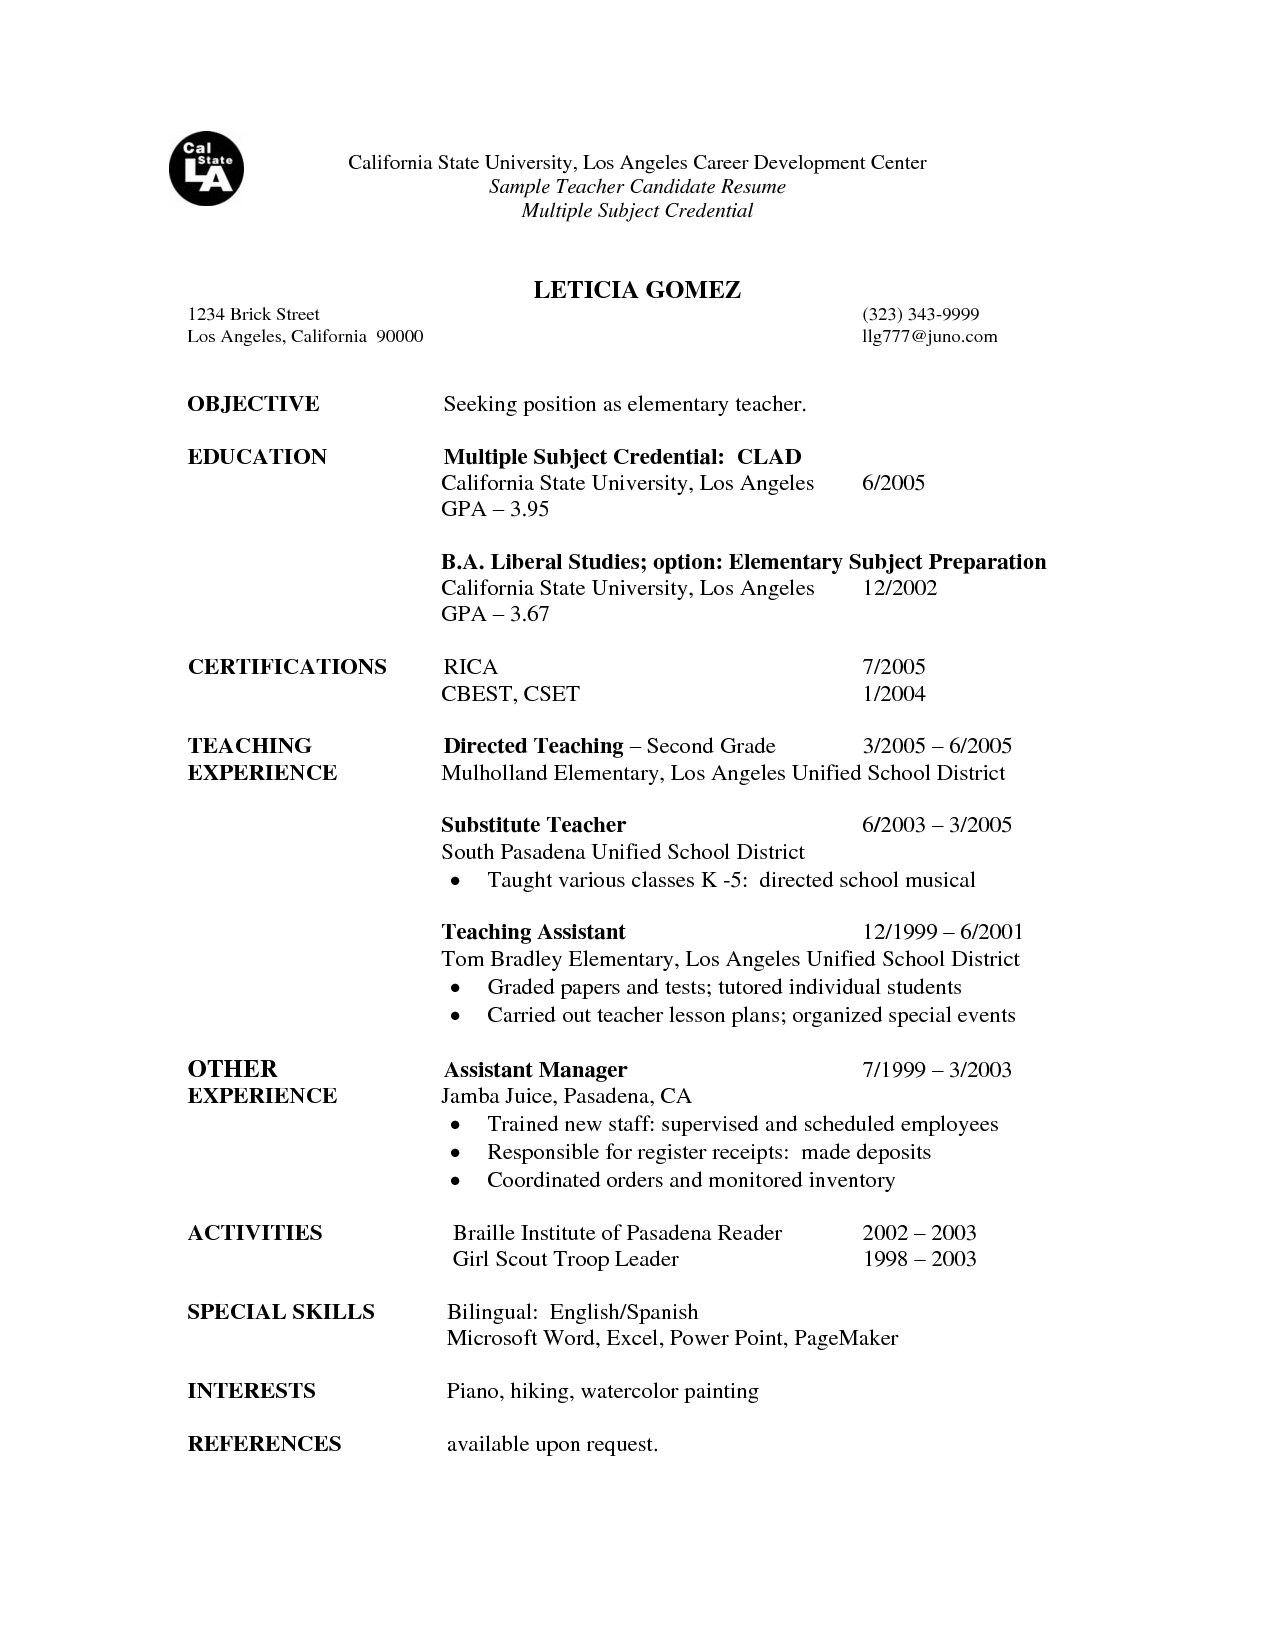 example resume objective teacher resume objective teacher resume happytom co example resume objective teacher resume objective teacher resume happytom co